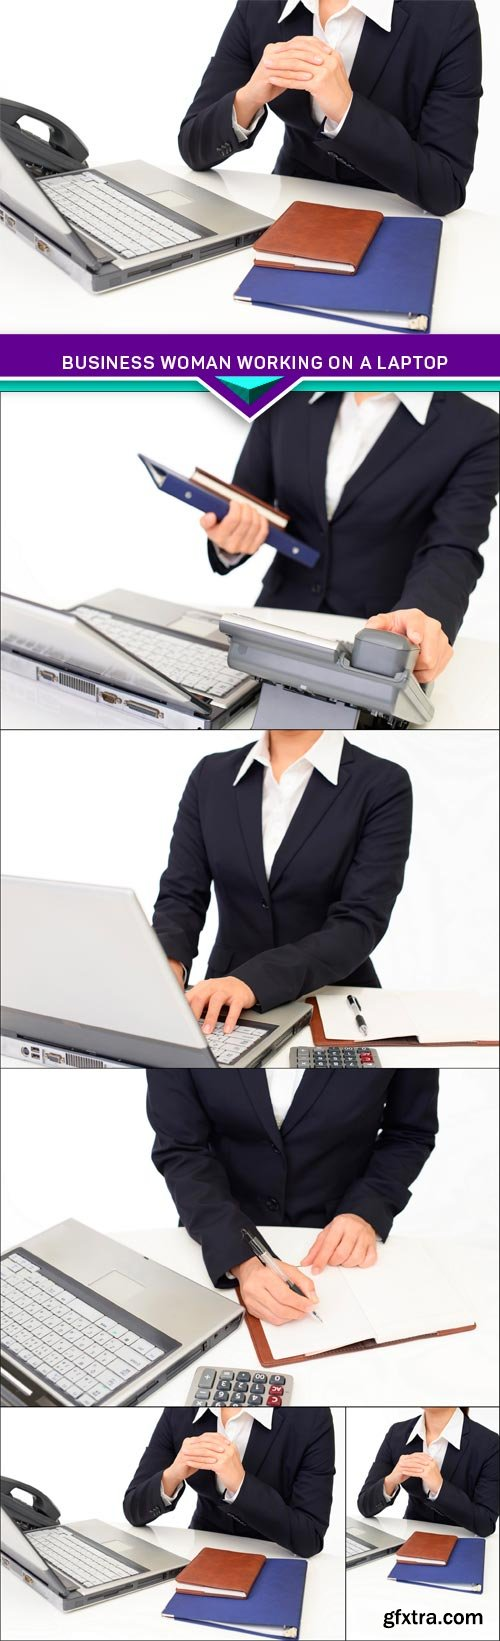 Business woman working on a laptop 5x JPEG